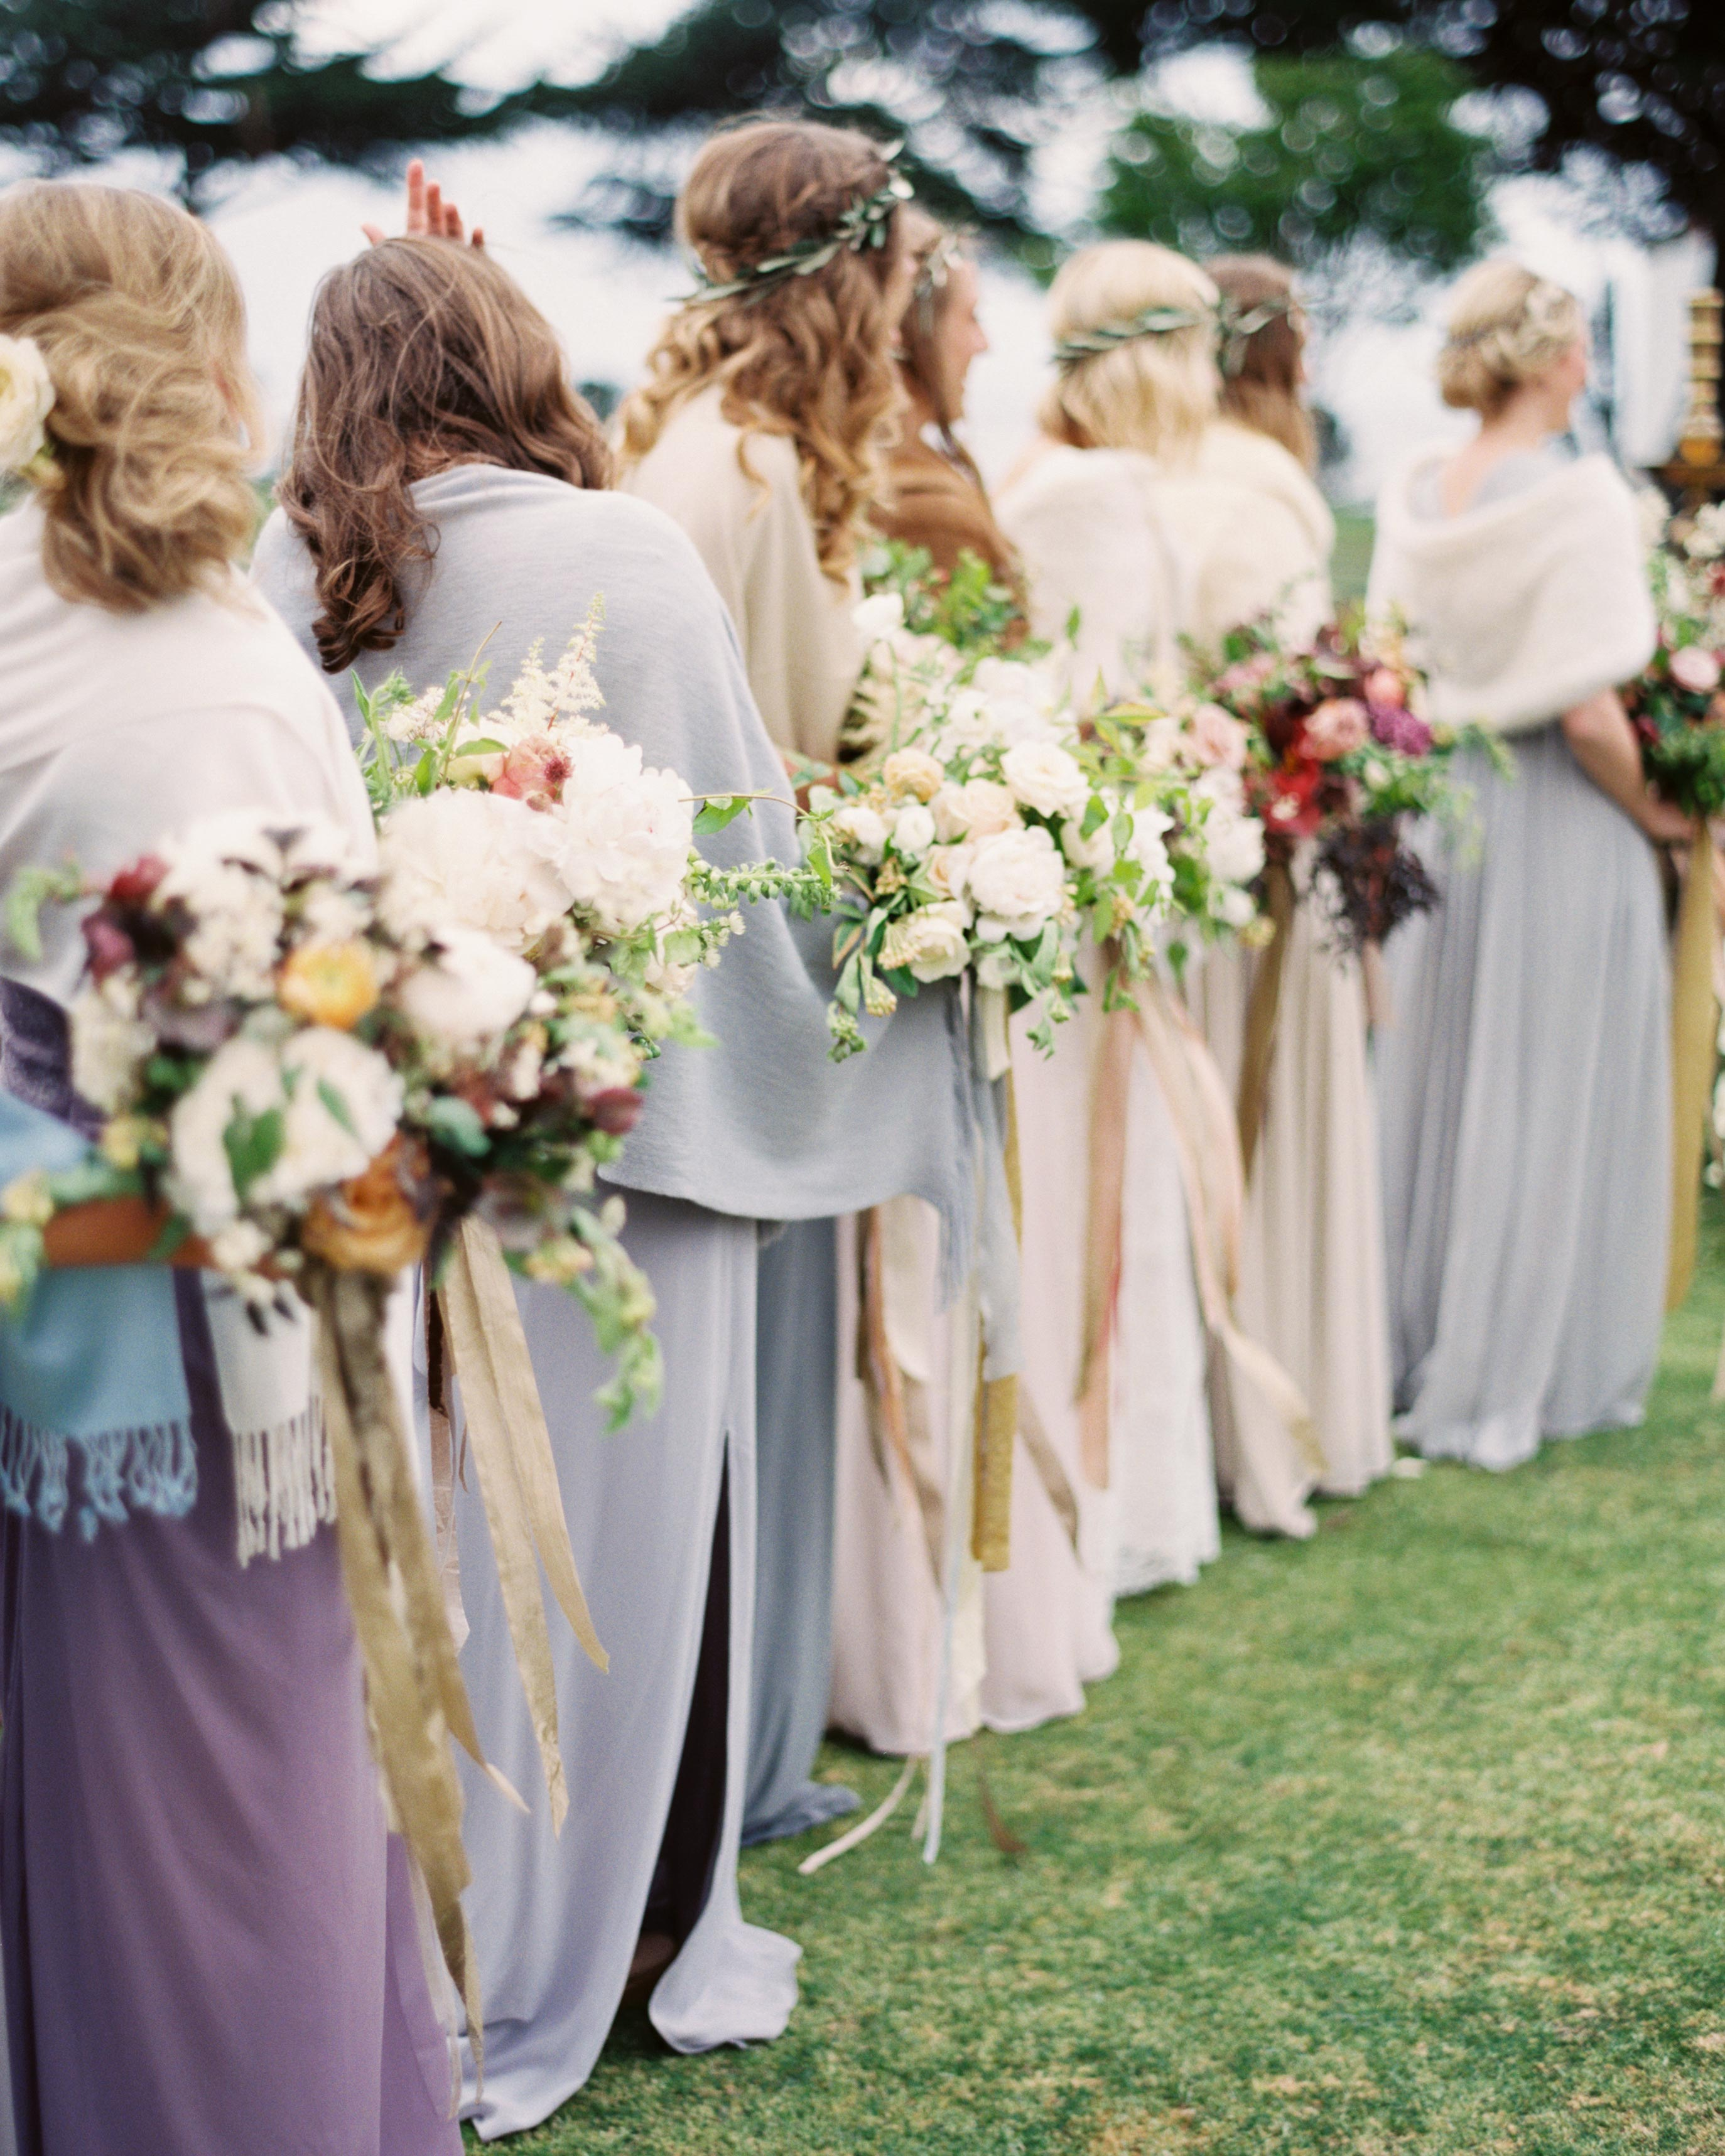 Dress Your Bridesmaids Right